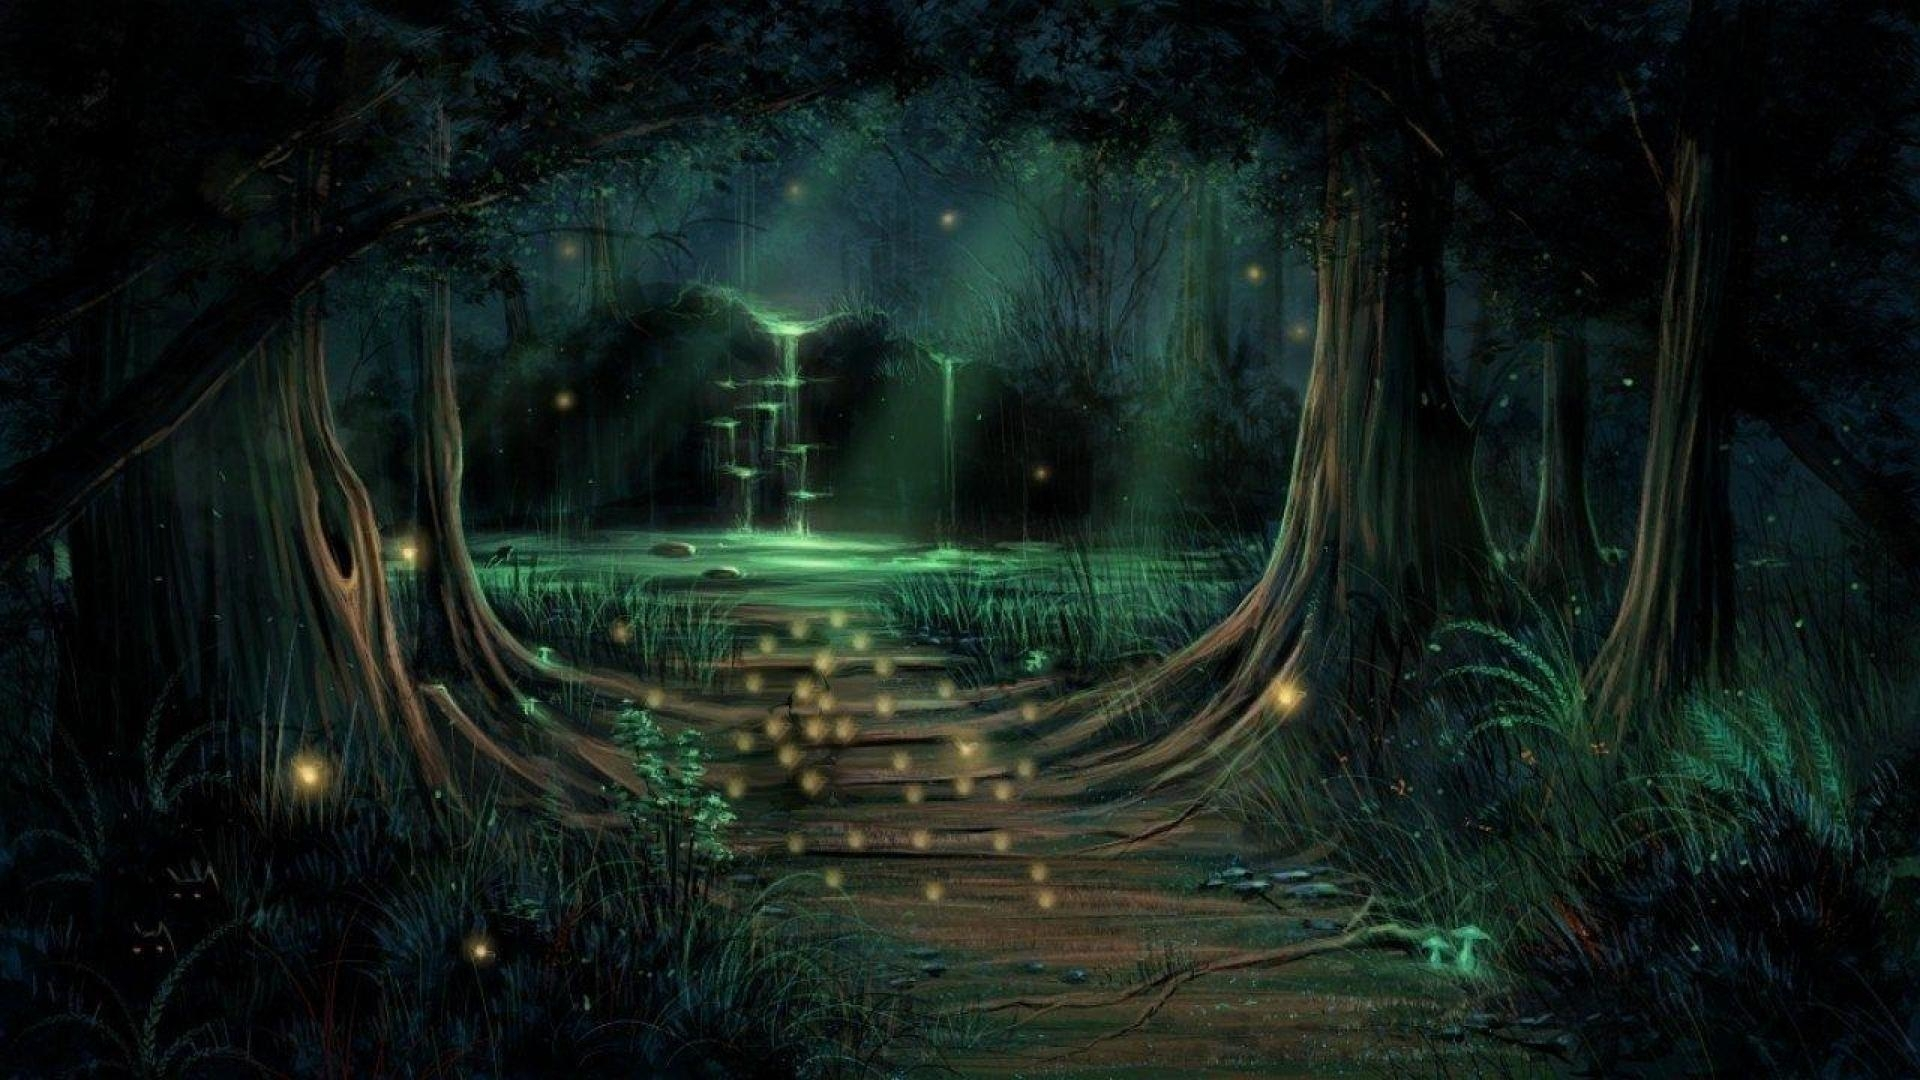 enchanted forest wallpaper - this wallpaper